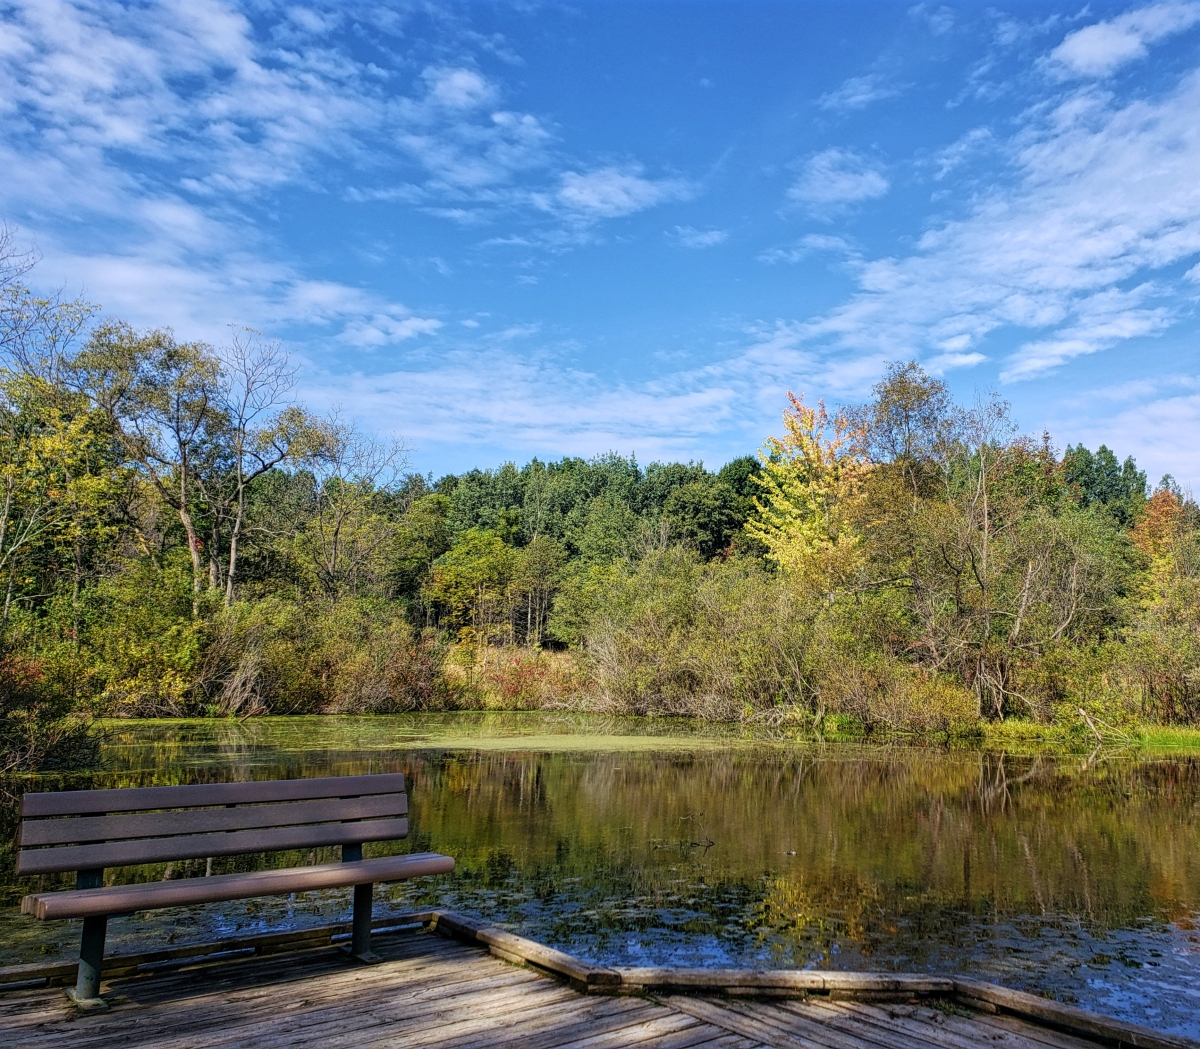 Enjoy the view of the Bear Creek Marsh from the boardwalk.